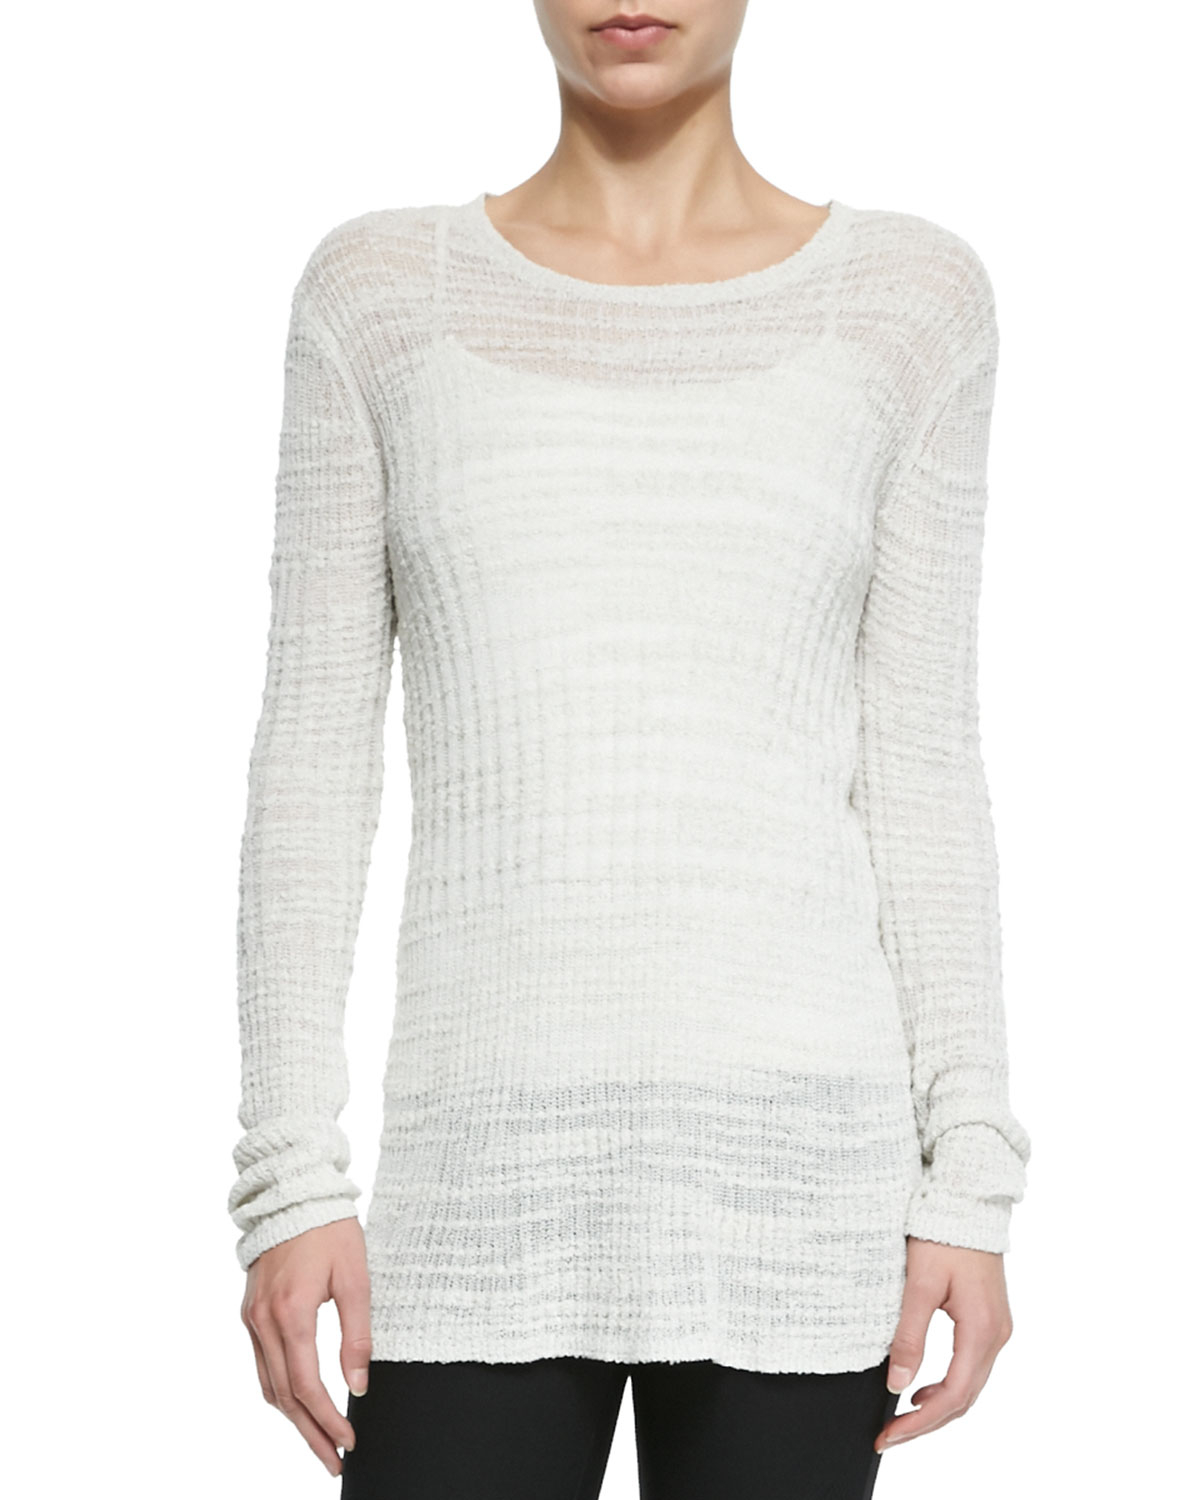 39f4c8265c4bd7 Lyst - Helmut Lang Lightweight Knit See-Through Sweater in White